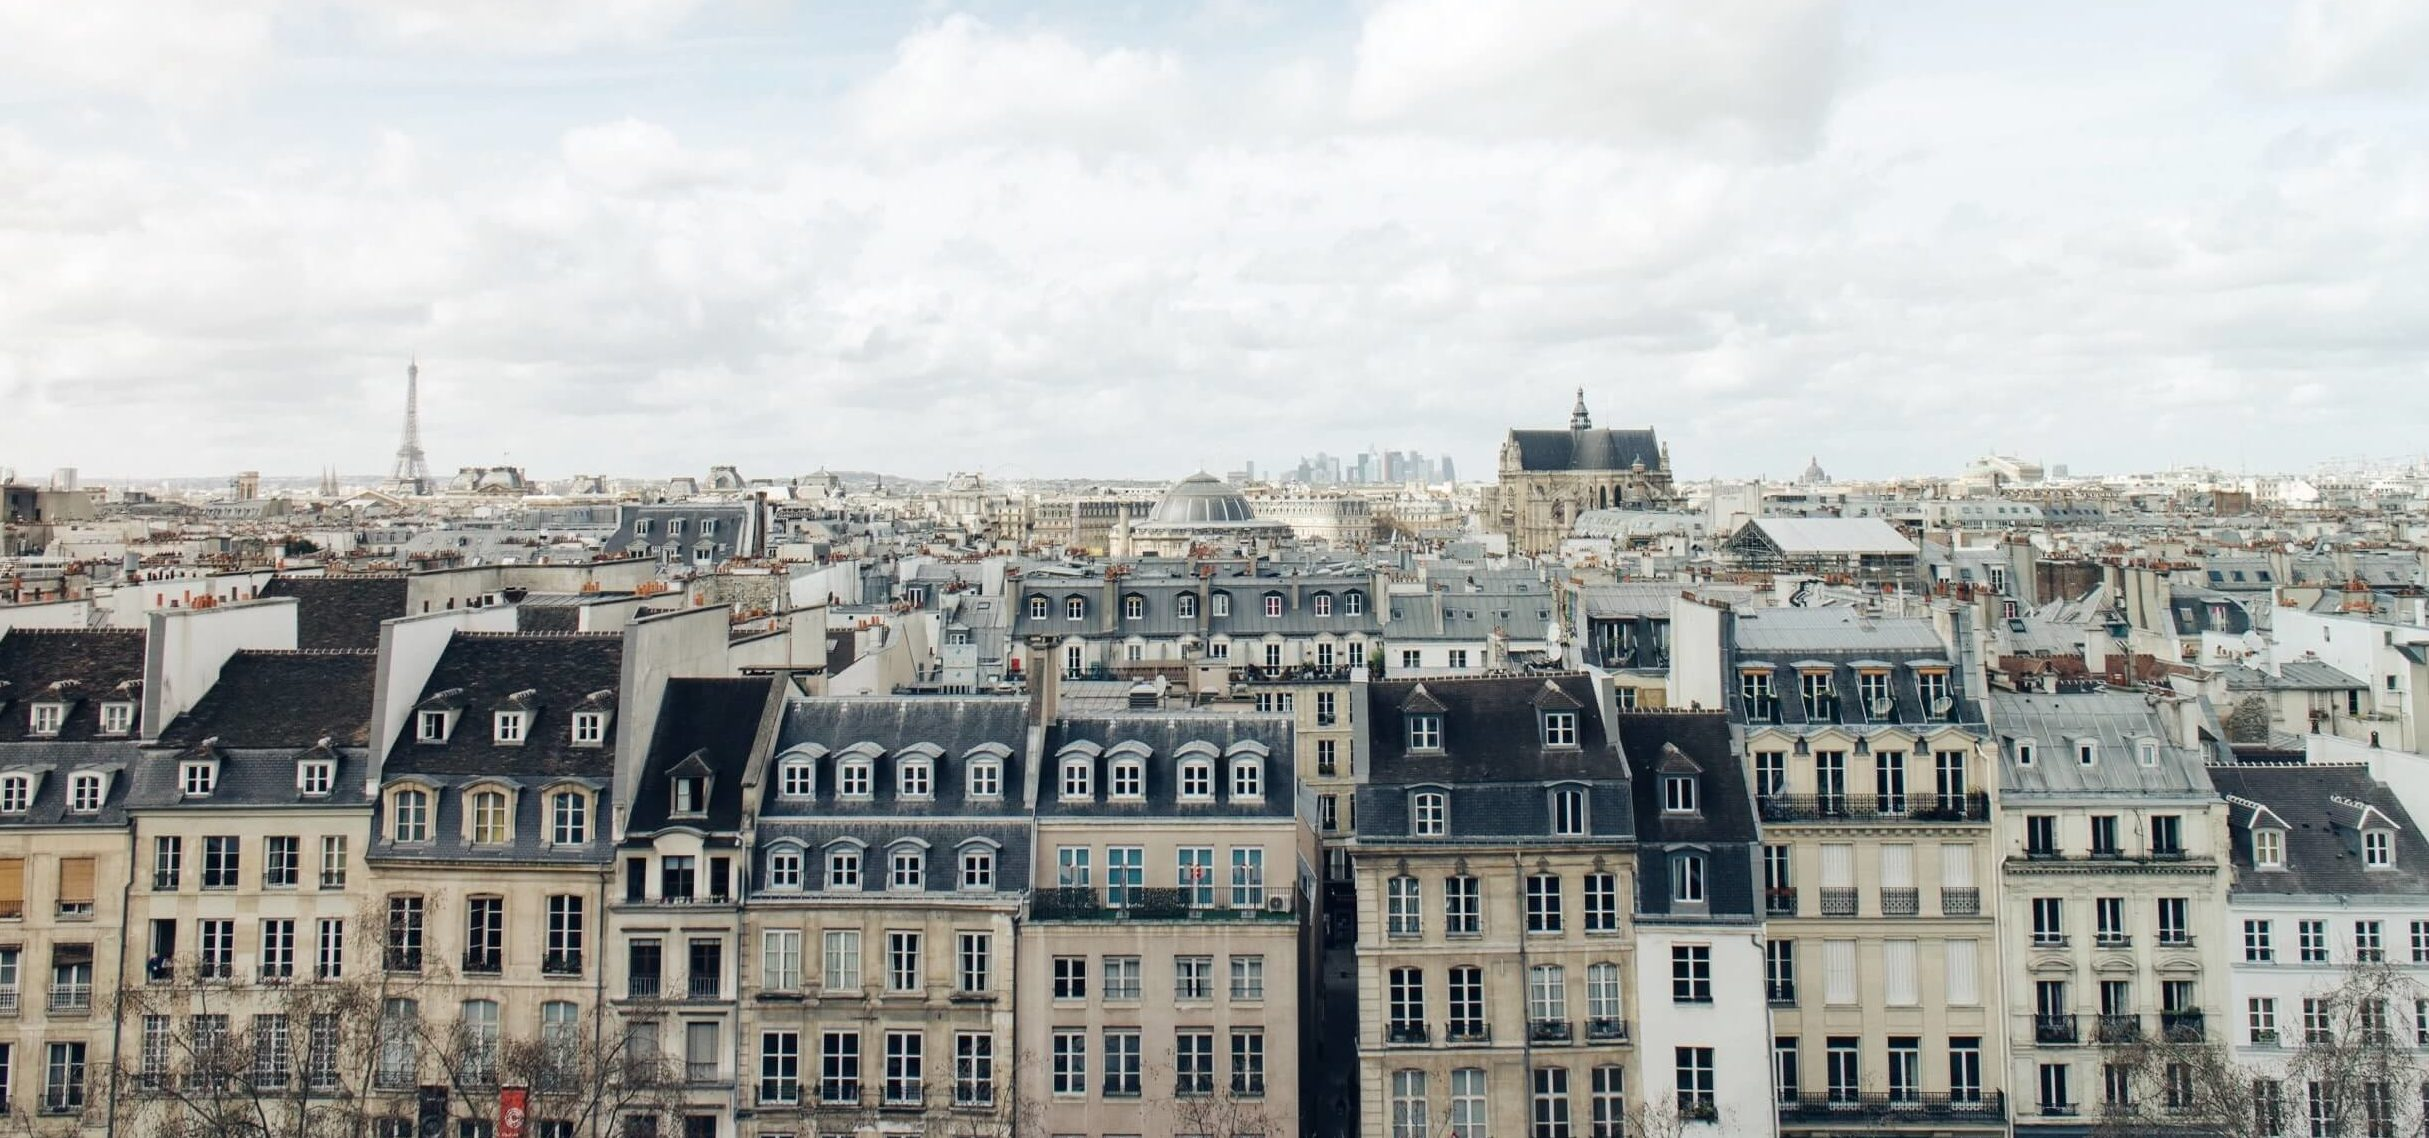 A view from the Centre Pompidou over the residential apartment buildings of Paris